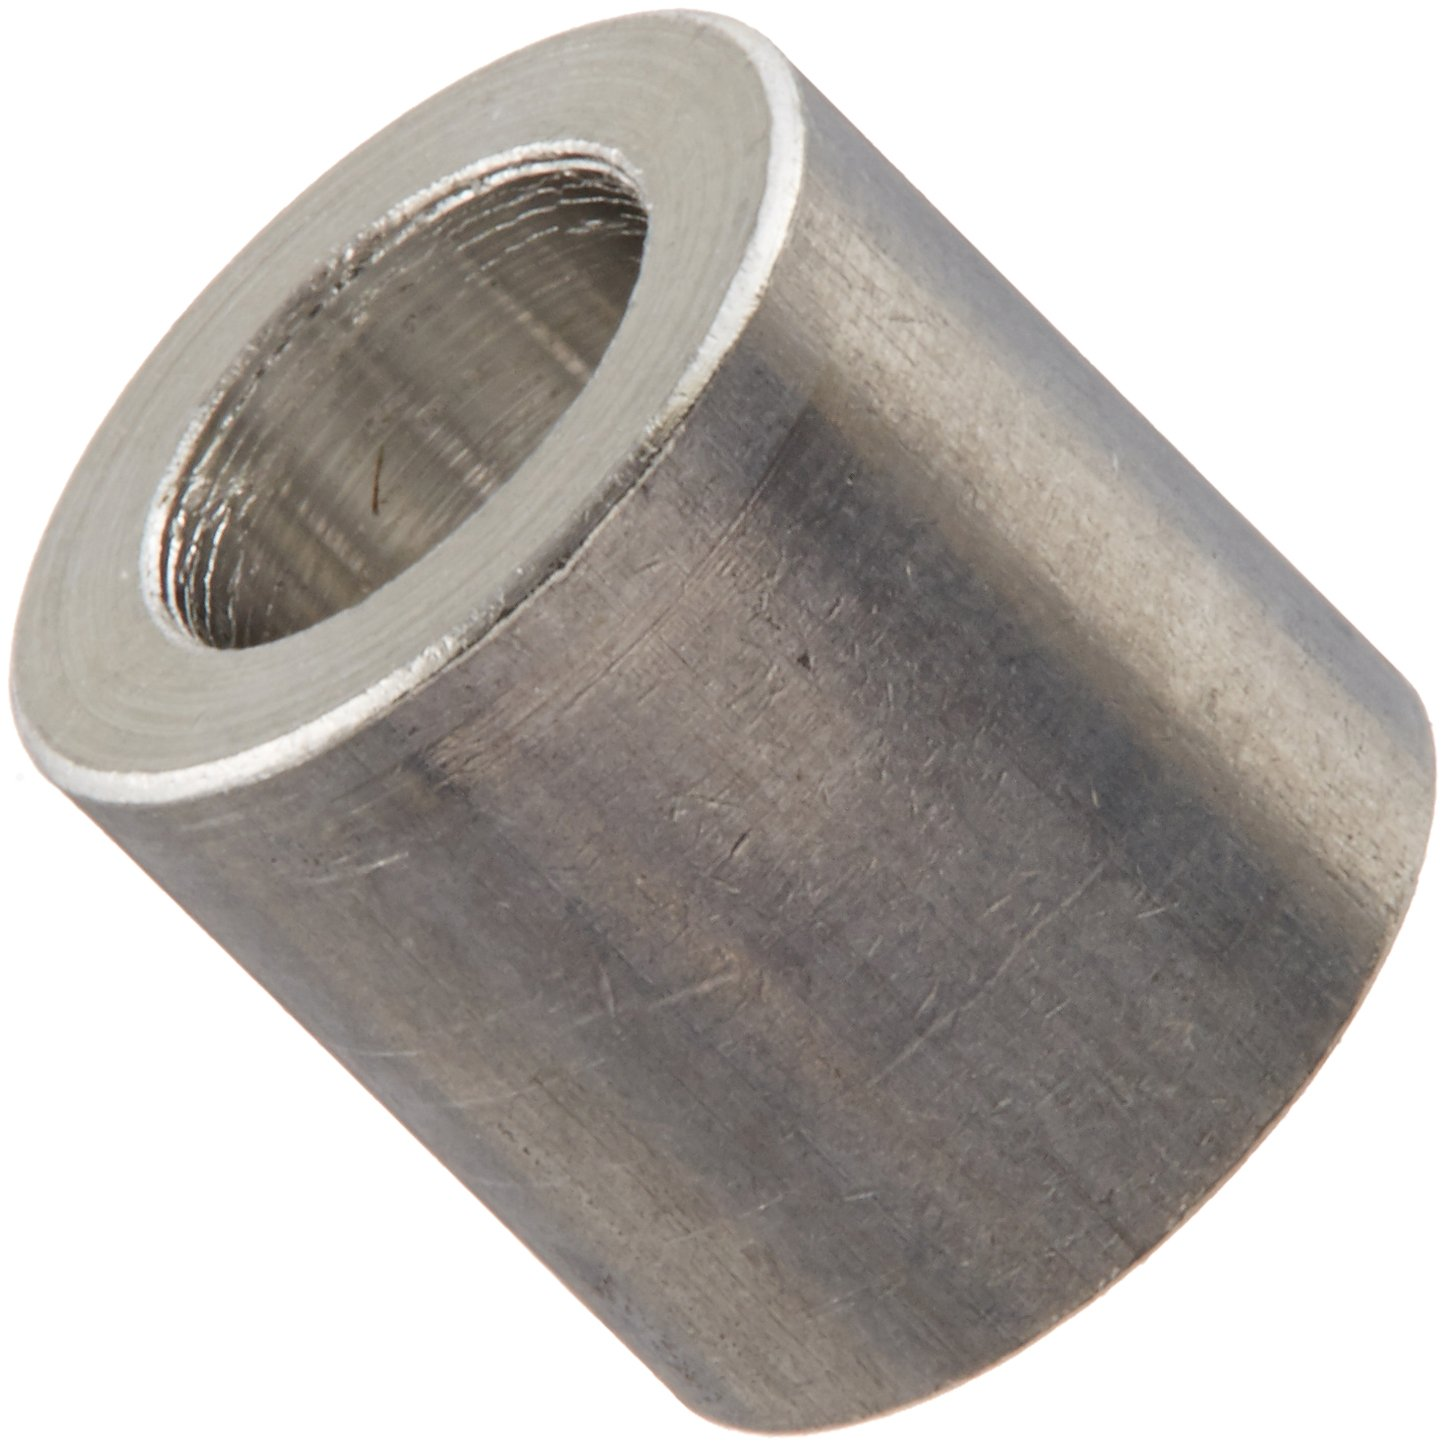 Pack of 25 Pack of 25 Plain Finish Small Parts 140406RSA 0.14 ID 1//4 OD Round Spacer 1//4 Length Aluminum 1//4 OD 0.14 ID 1//4 Length #6 Screw Size